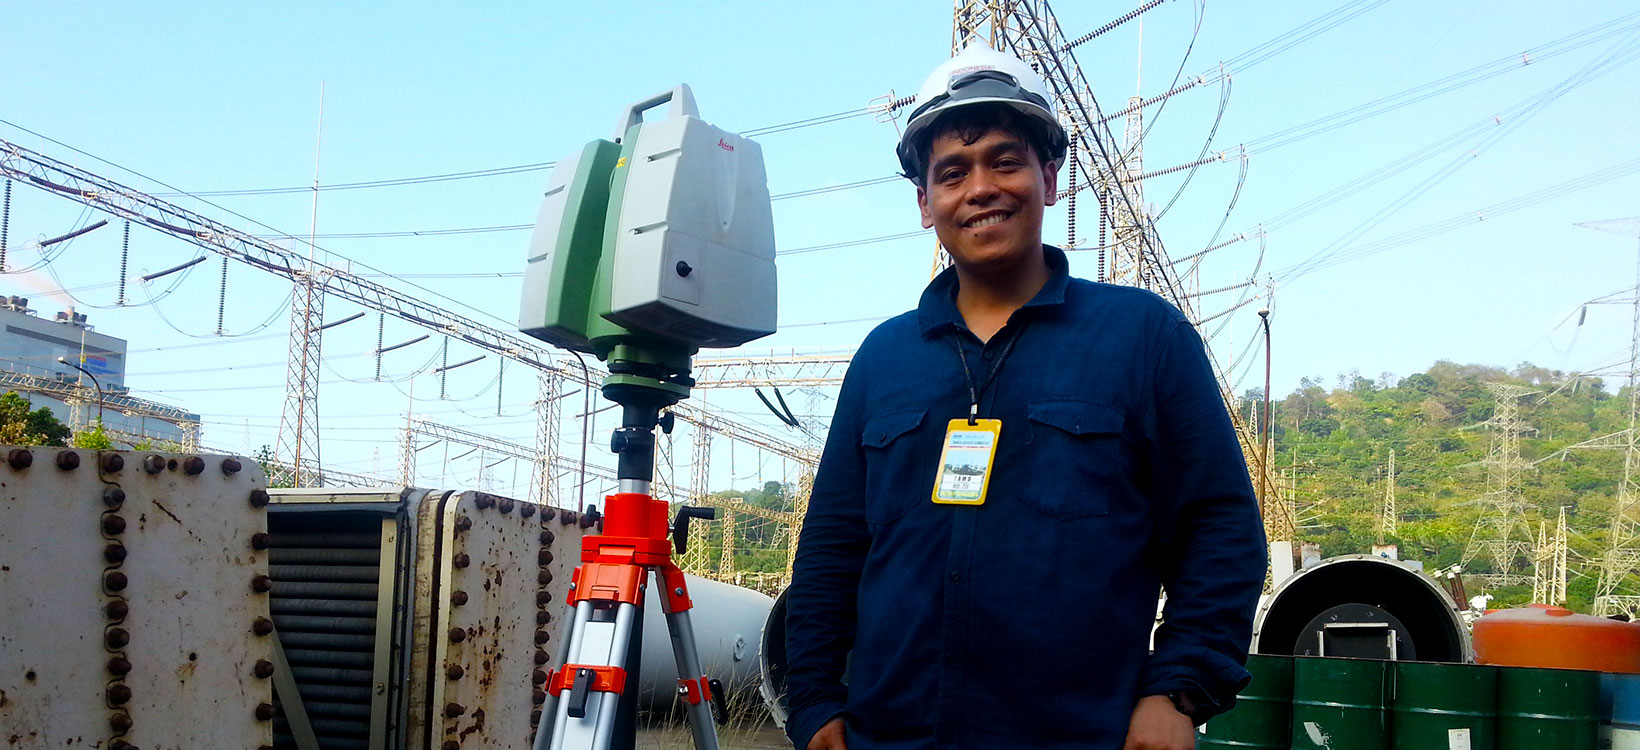 Power plant laser scan